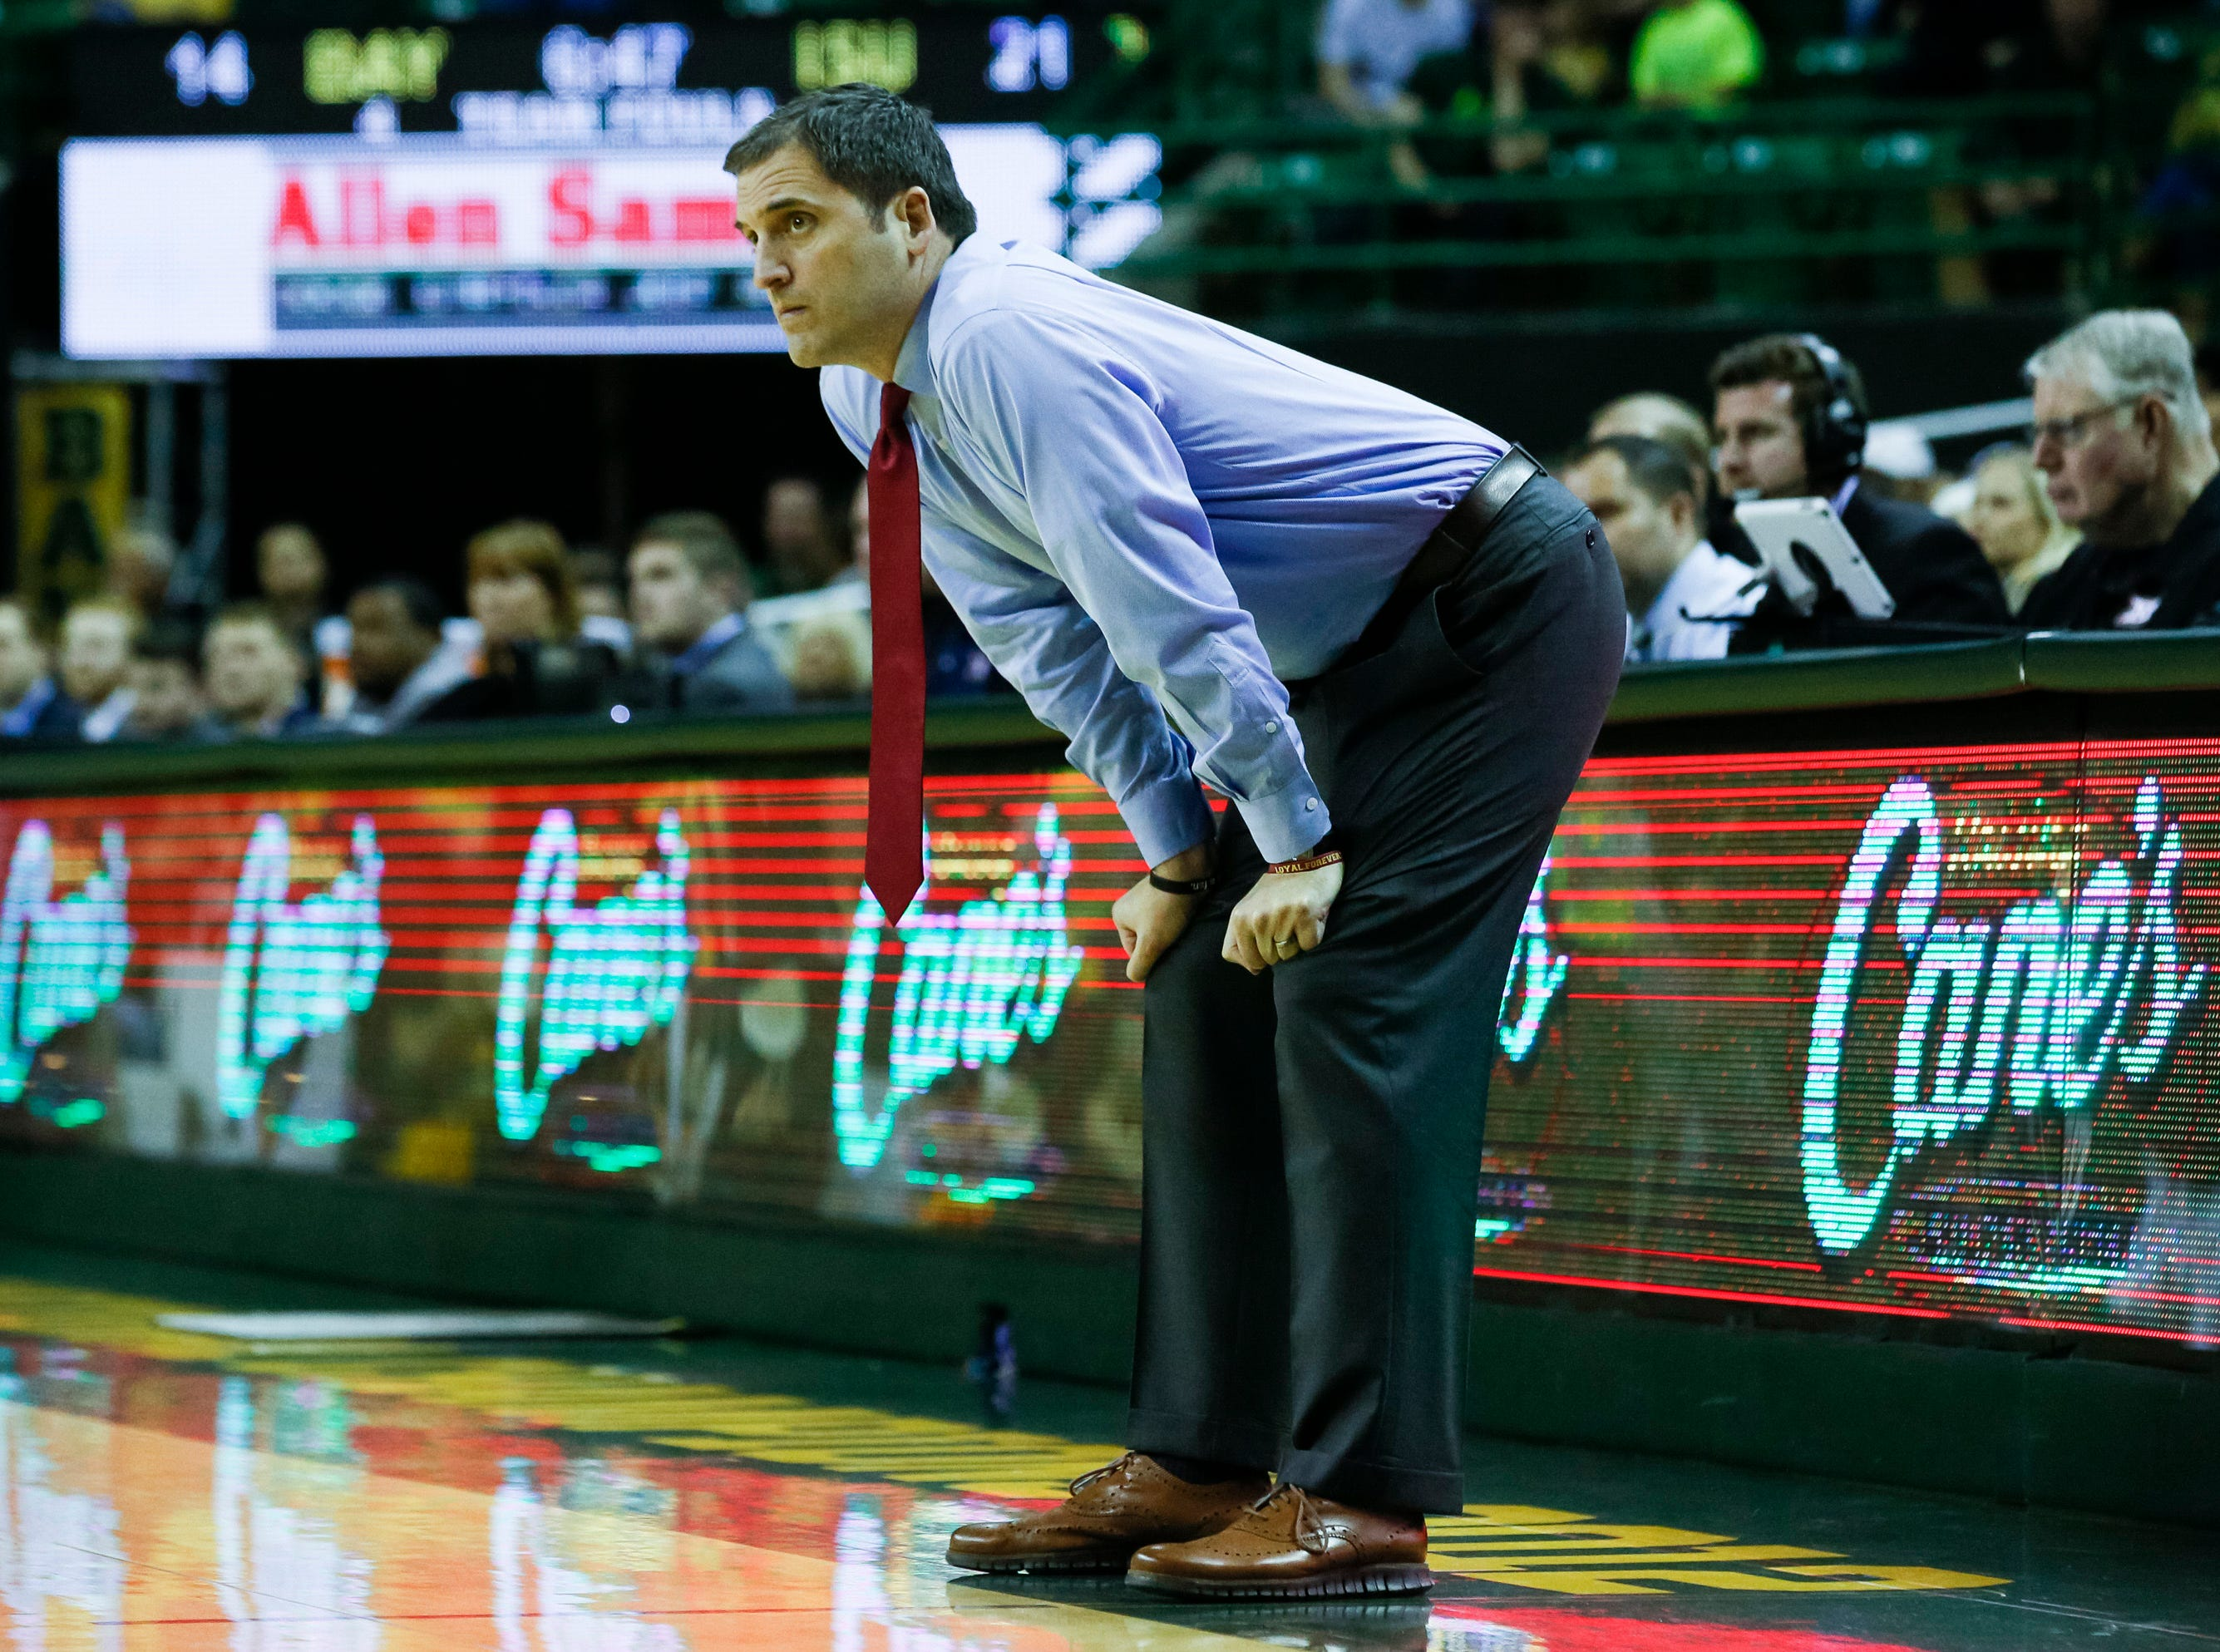 Iowa State Cyclones head coach Steve Prohm watches from the sidelines during the first half against the Baylor Bears at Ferrell Center.